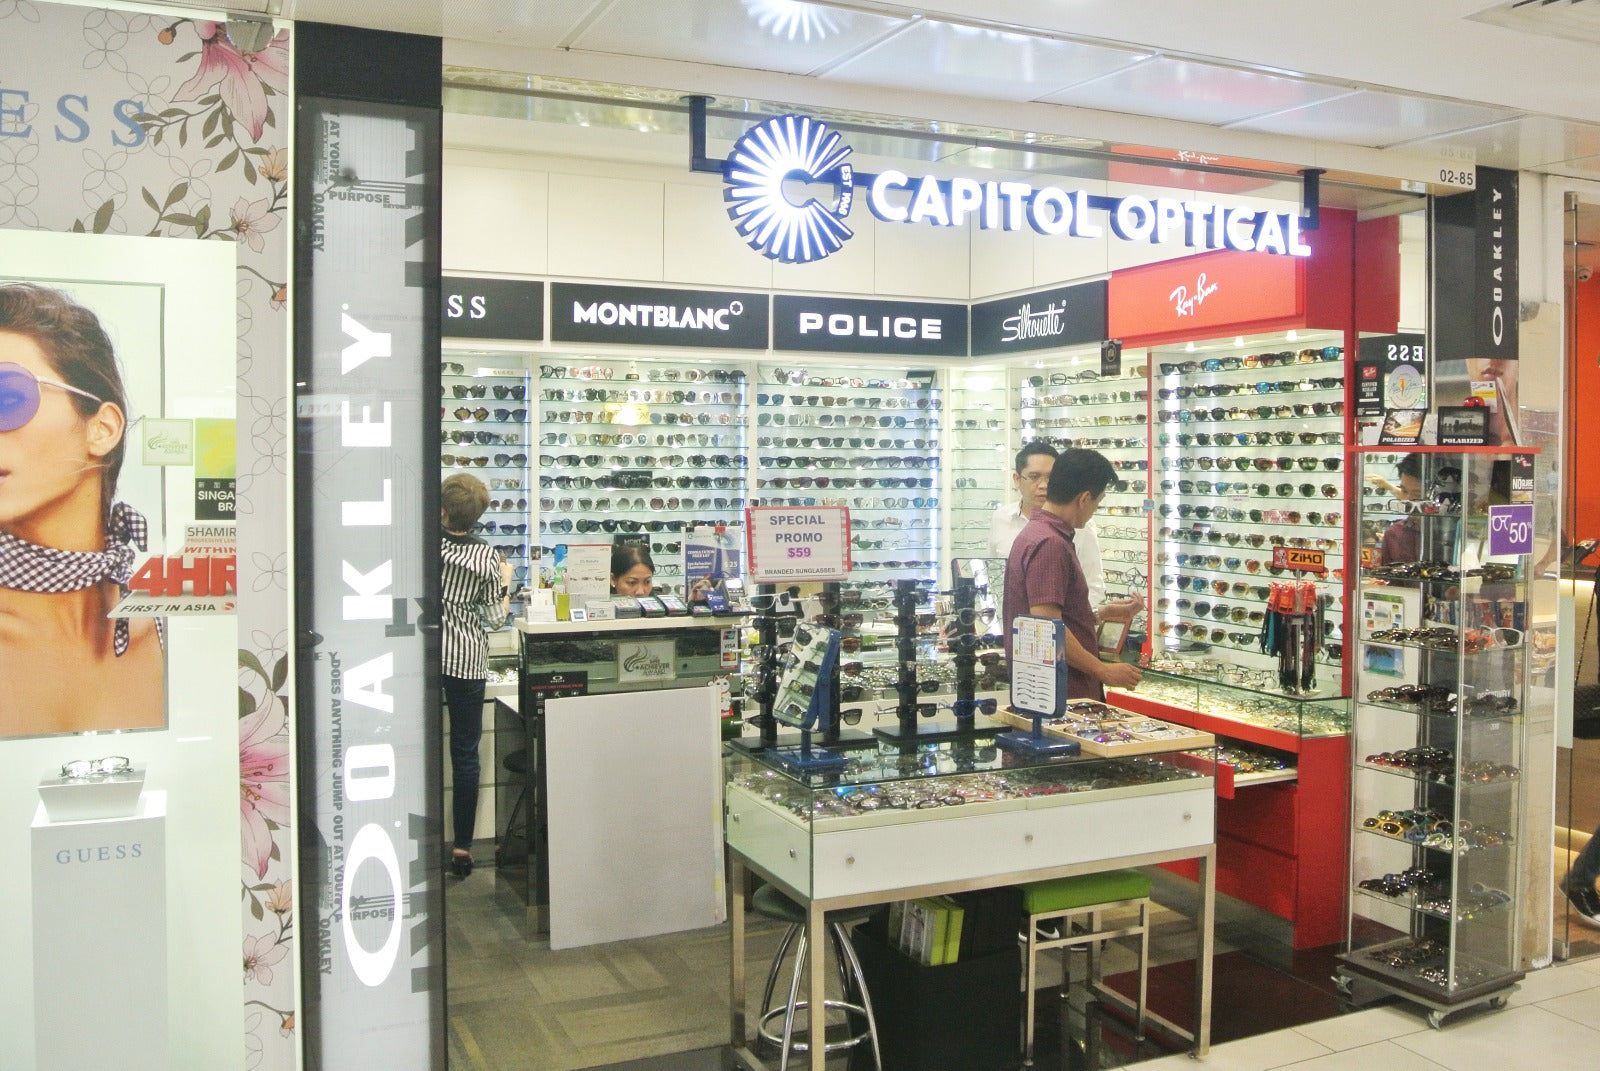 Capitol Optical Lucky Plaza M85